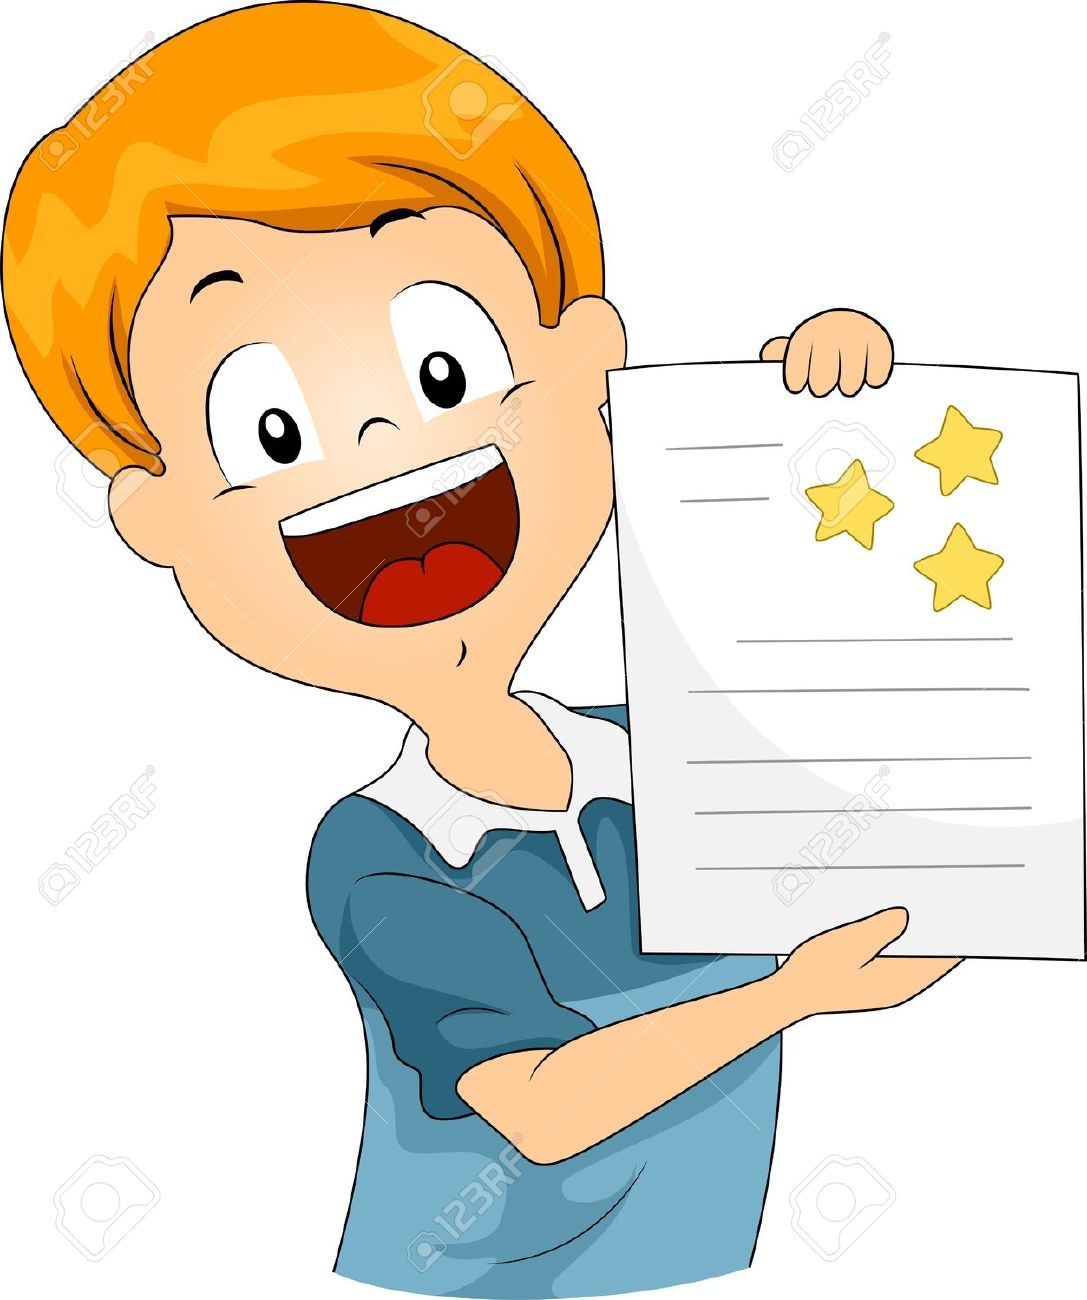 1087x1300 Winning clipart proud student